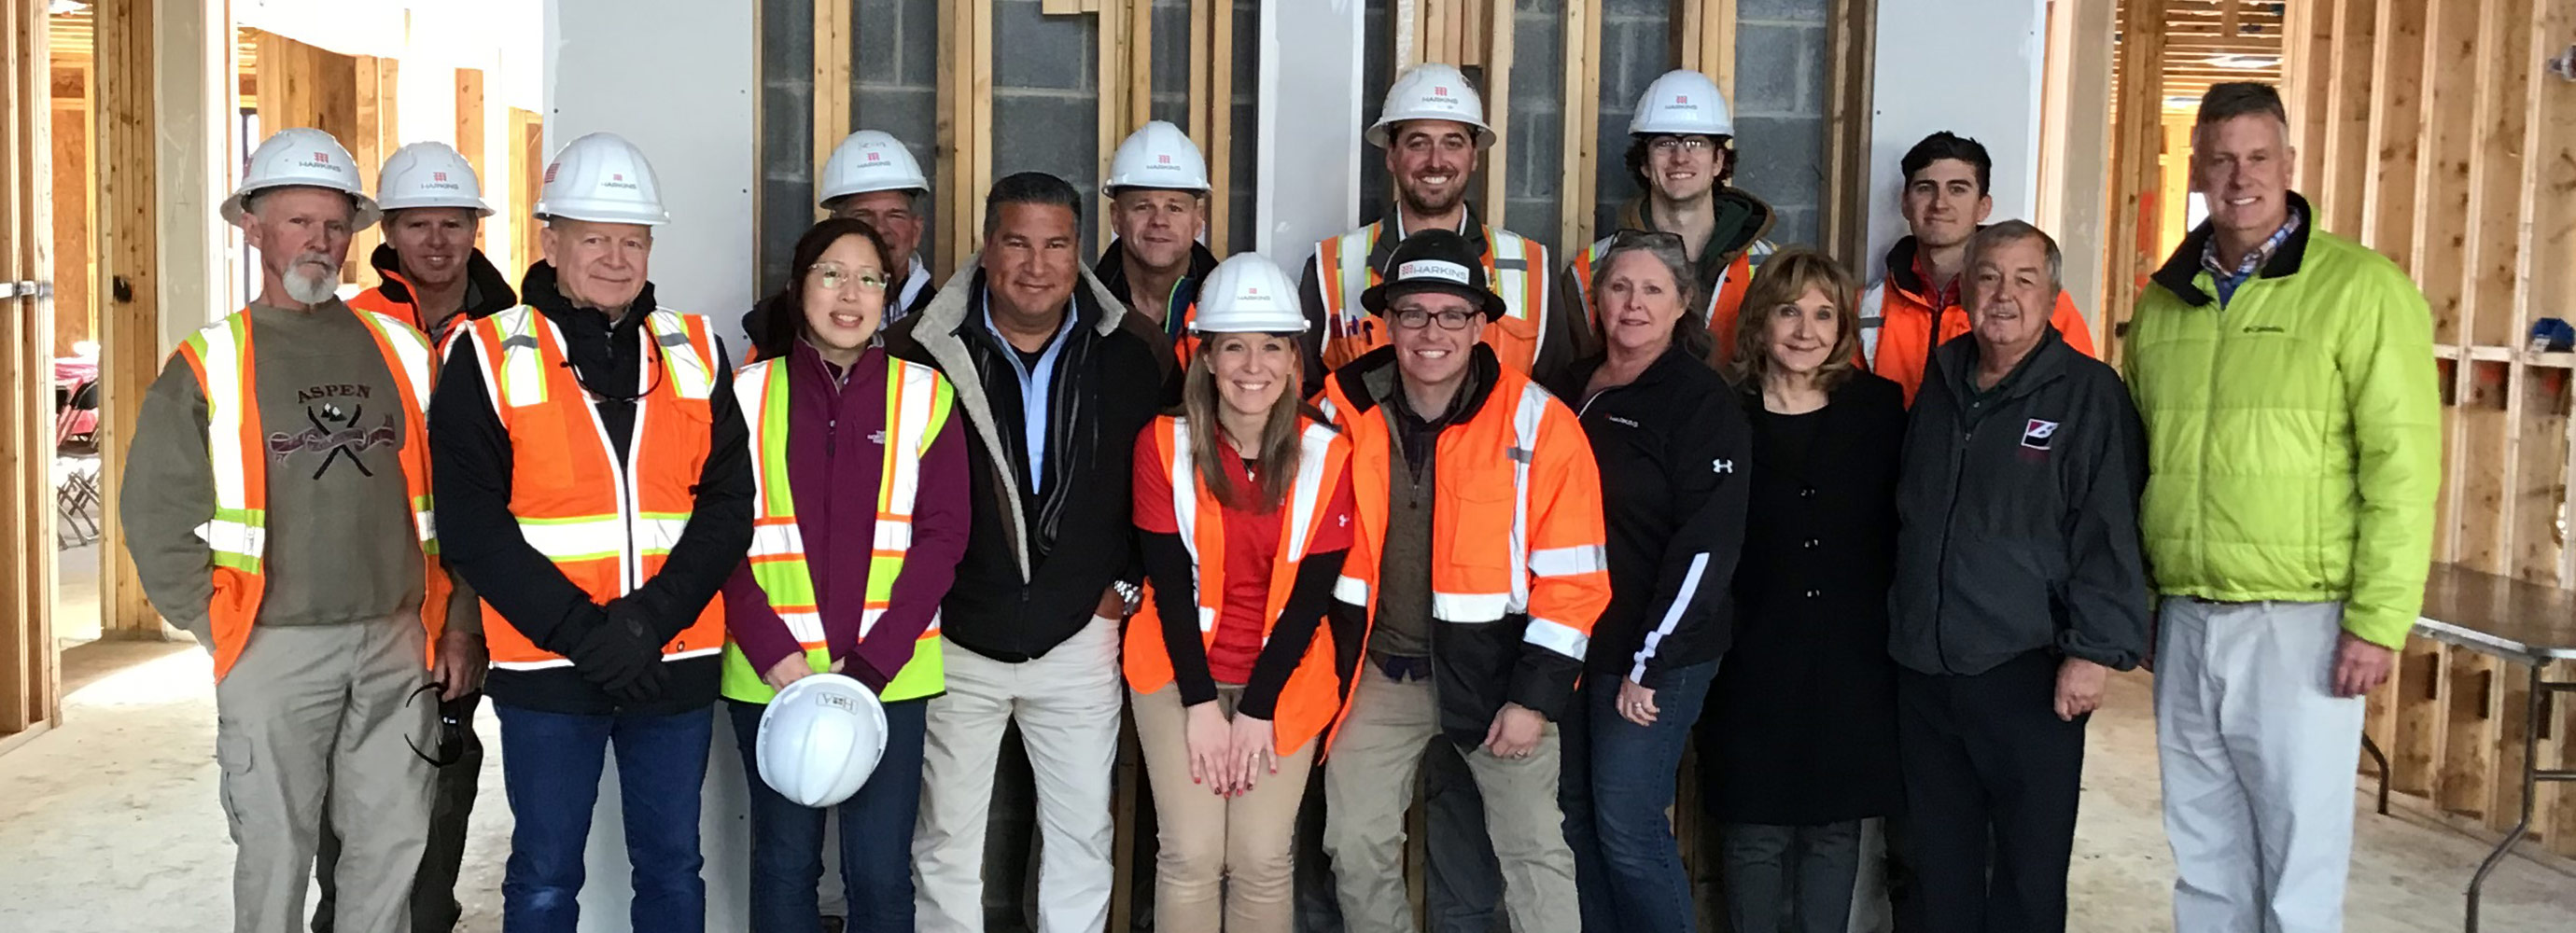 Beechtree team, owner, and architect gather for topping out